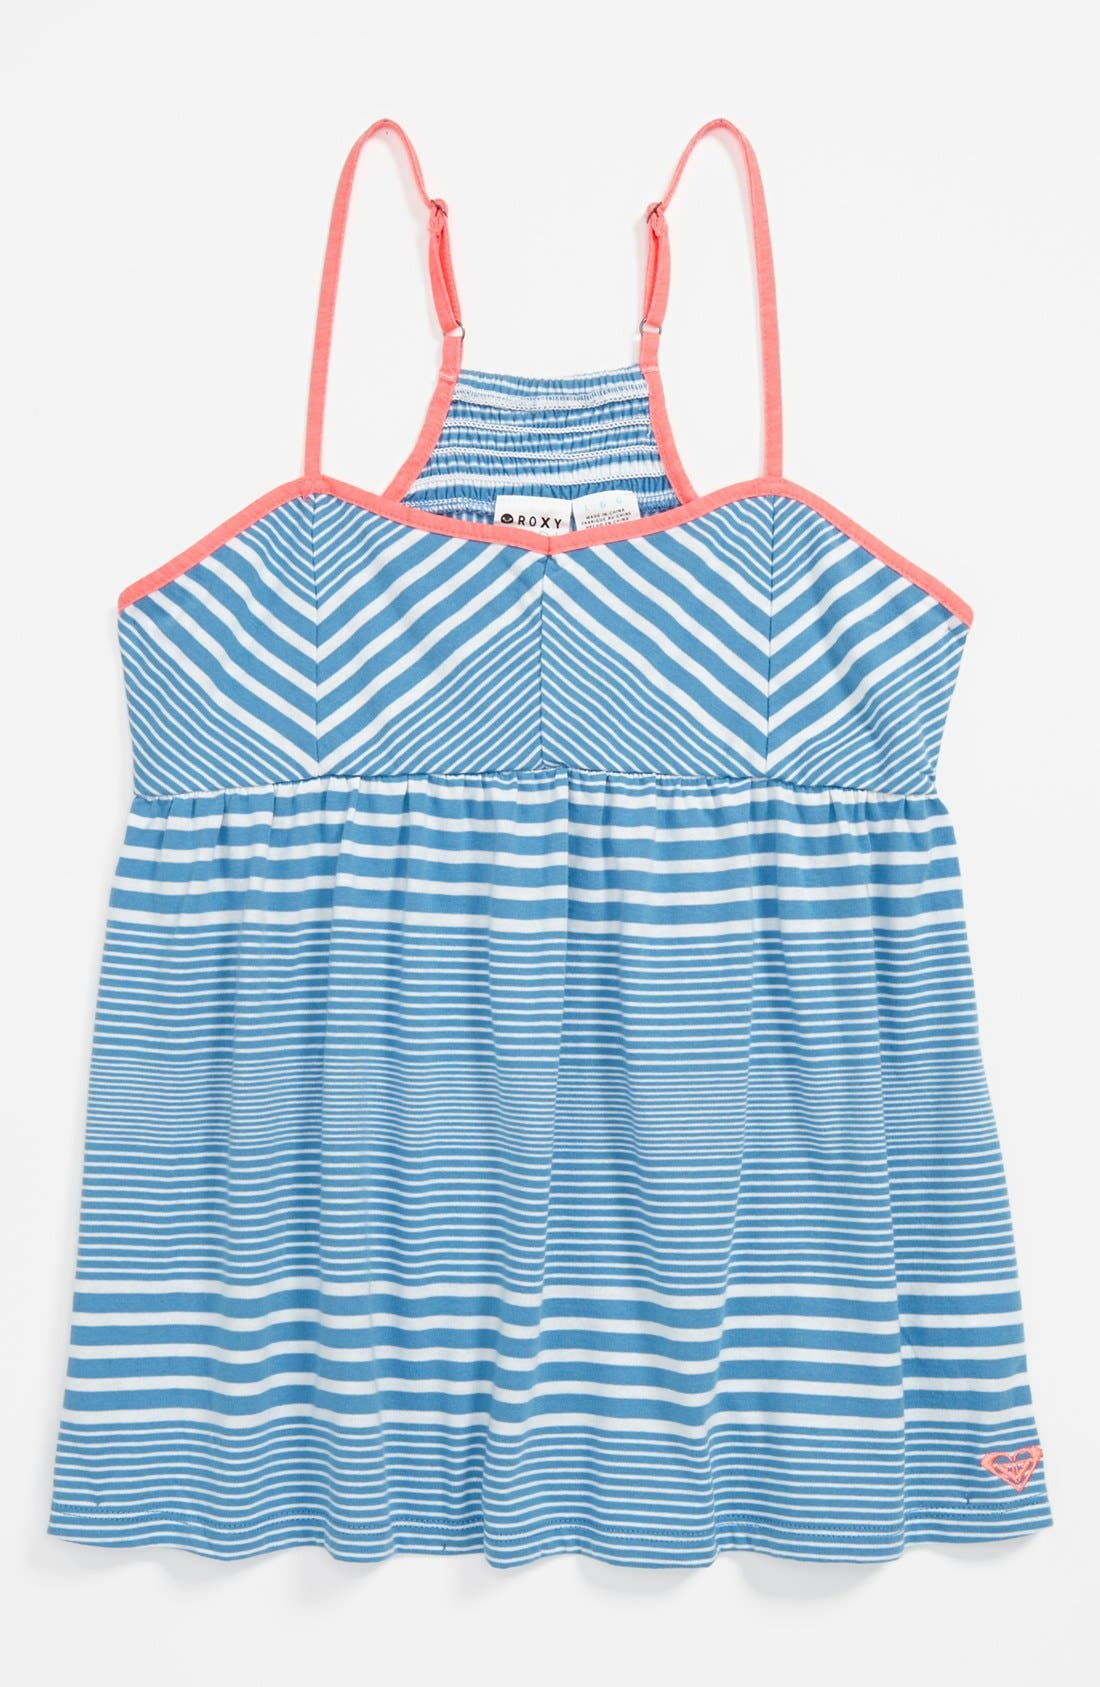 Alternate Image 1 Selected - 'Overplayed' Tank Top (Big Girls)